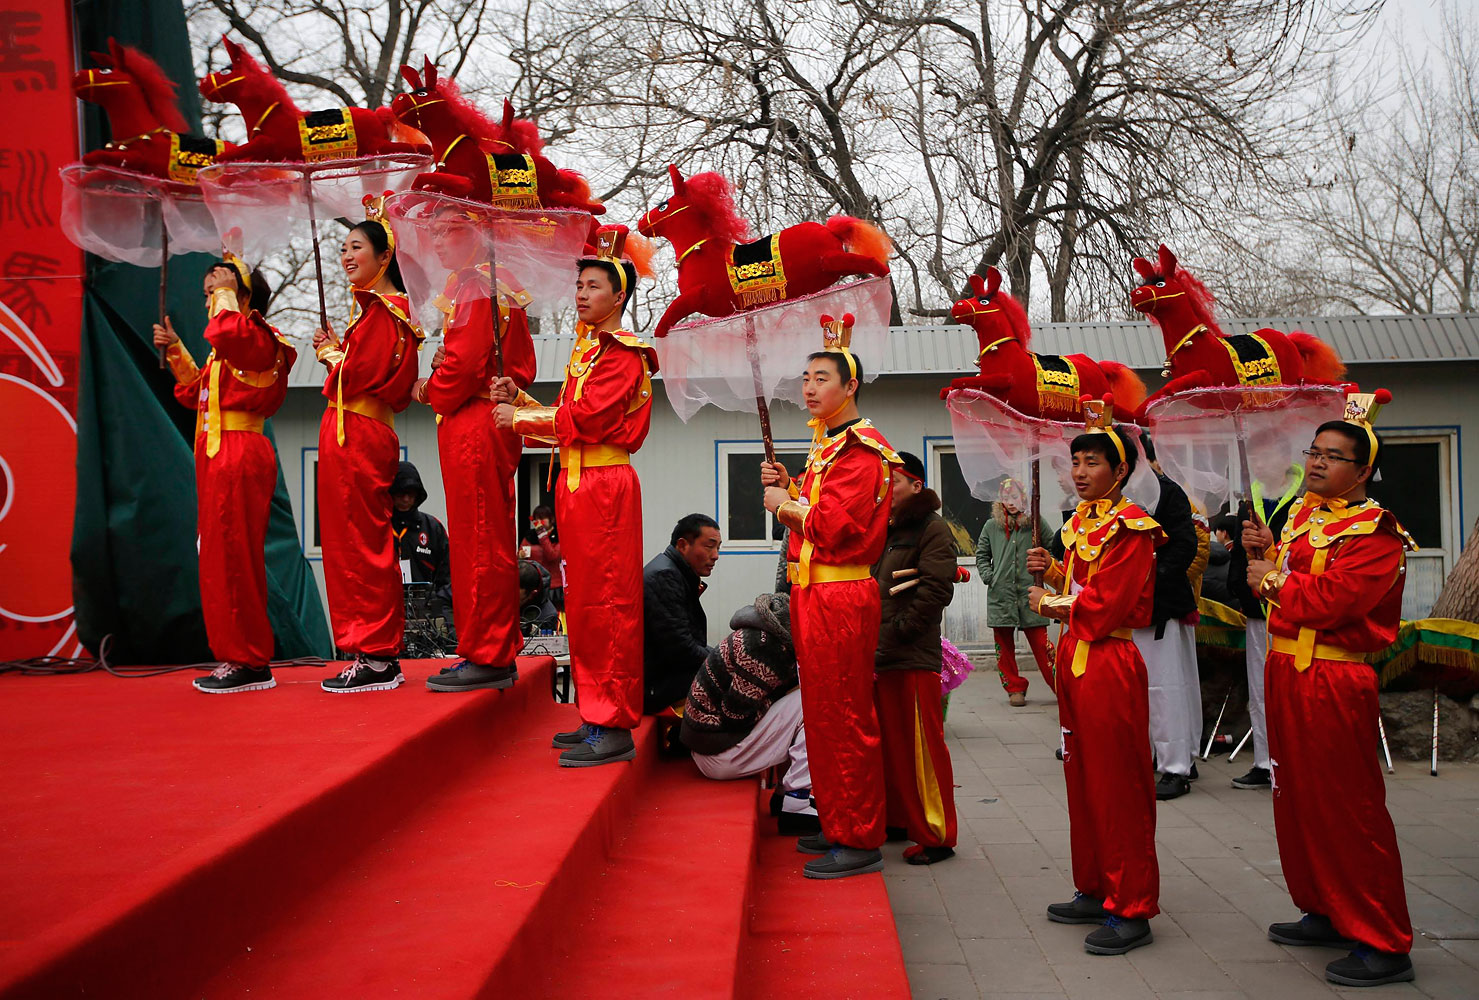 Folk dancers hold horse models as they prepare to take part in a traditional horse dance on the first day of the Chinese Lunar New Year, which welcomes the Year of the Horse, at the Longtan park in Beijing Jan. 31, 2014.